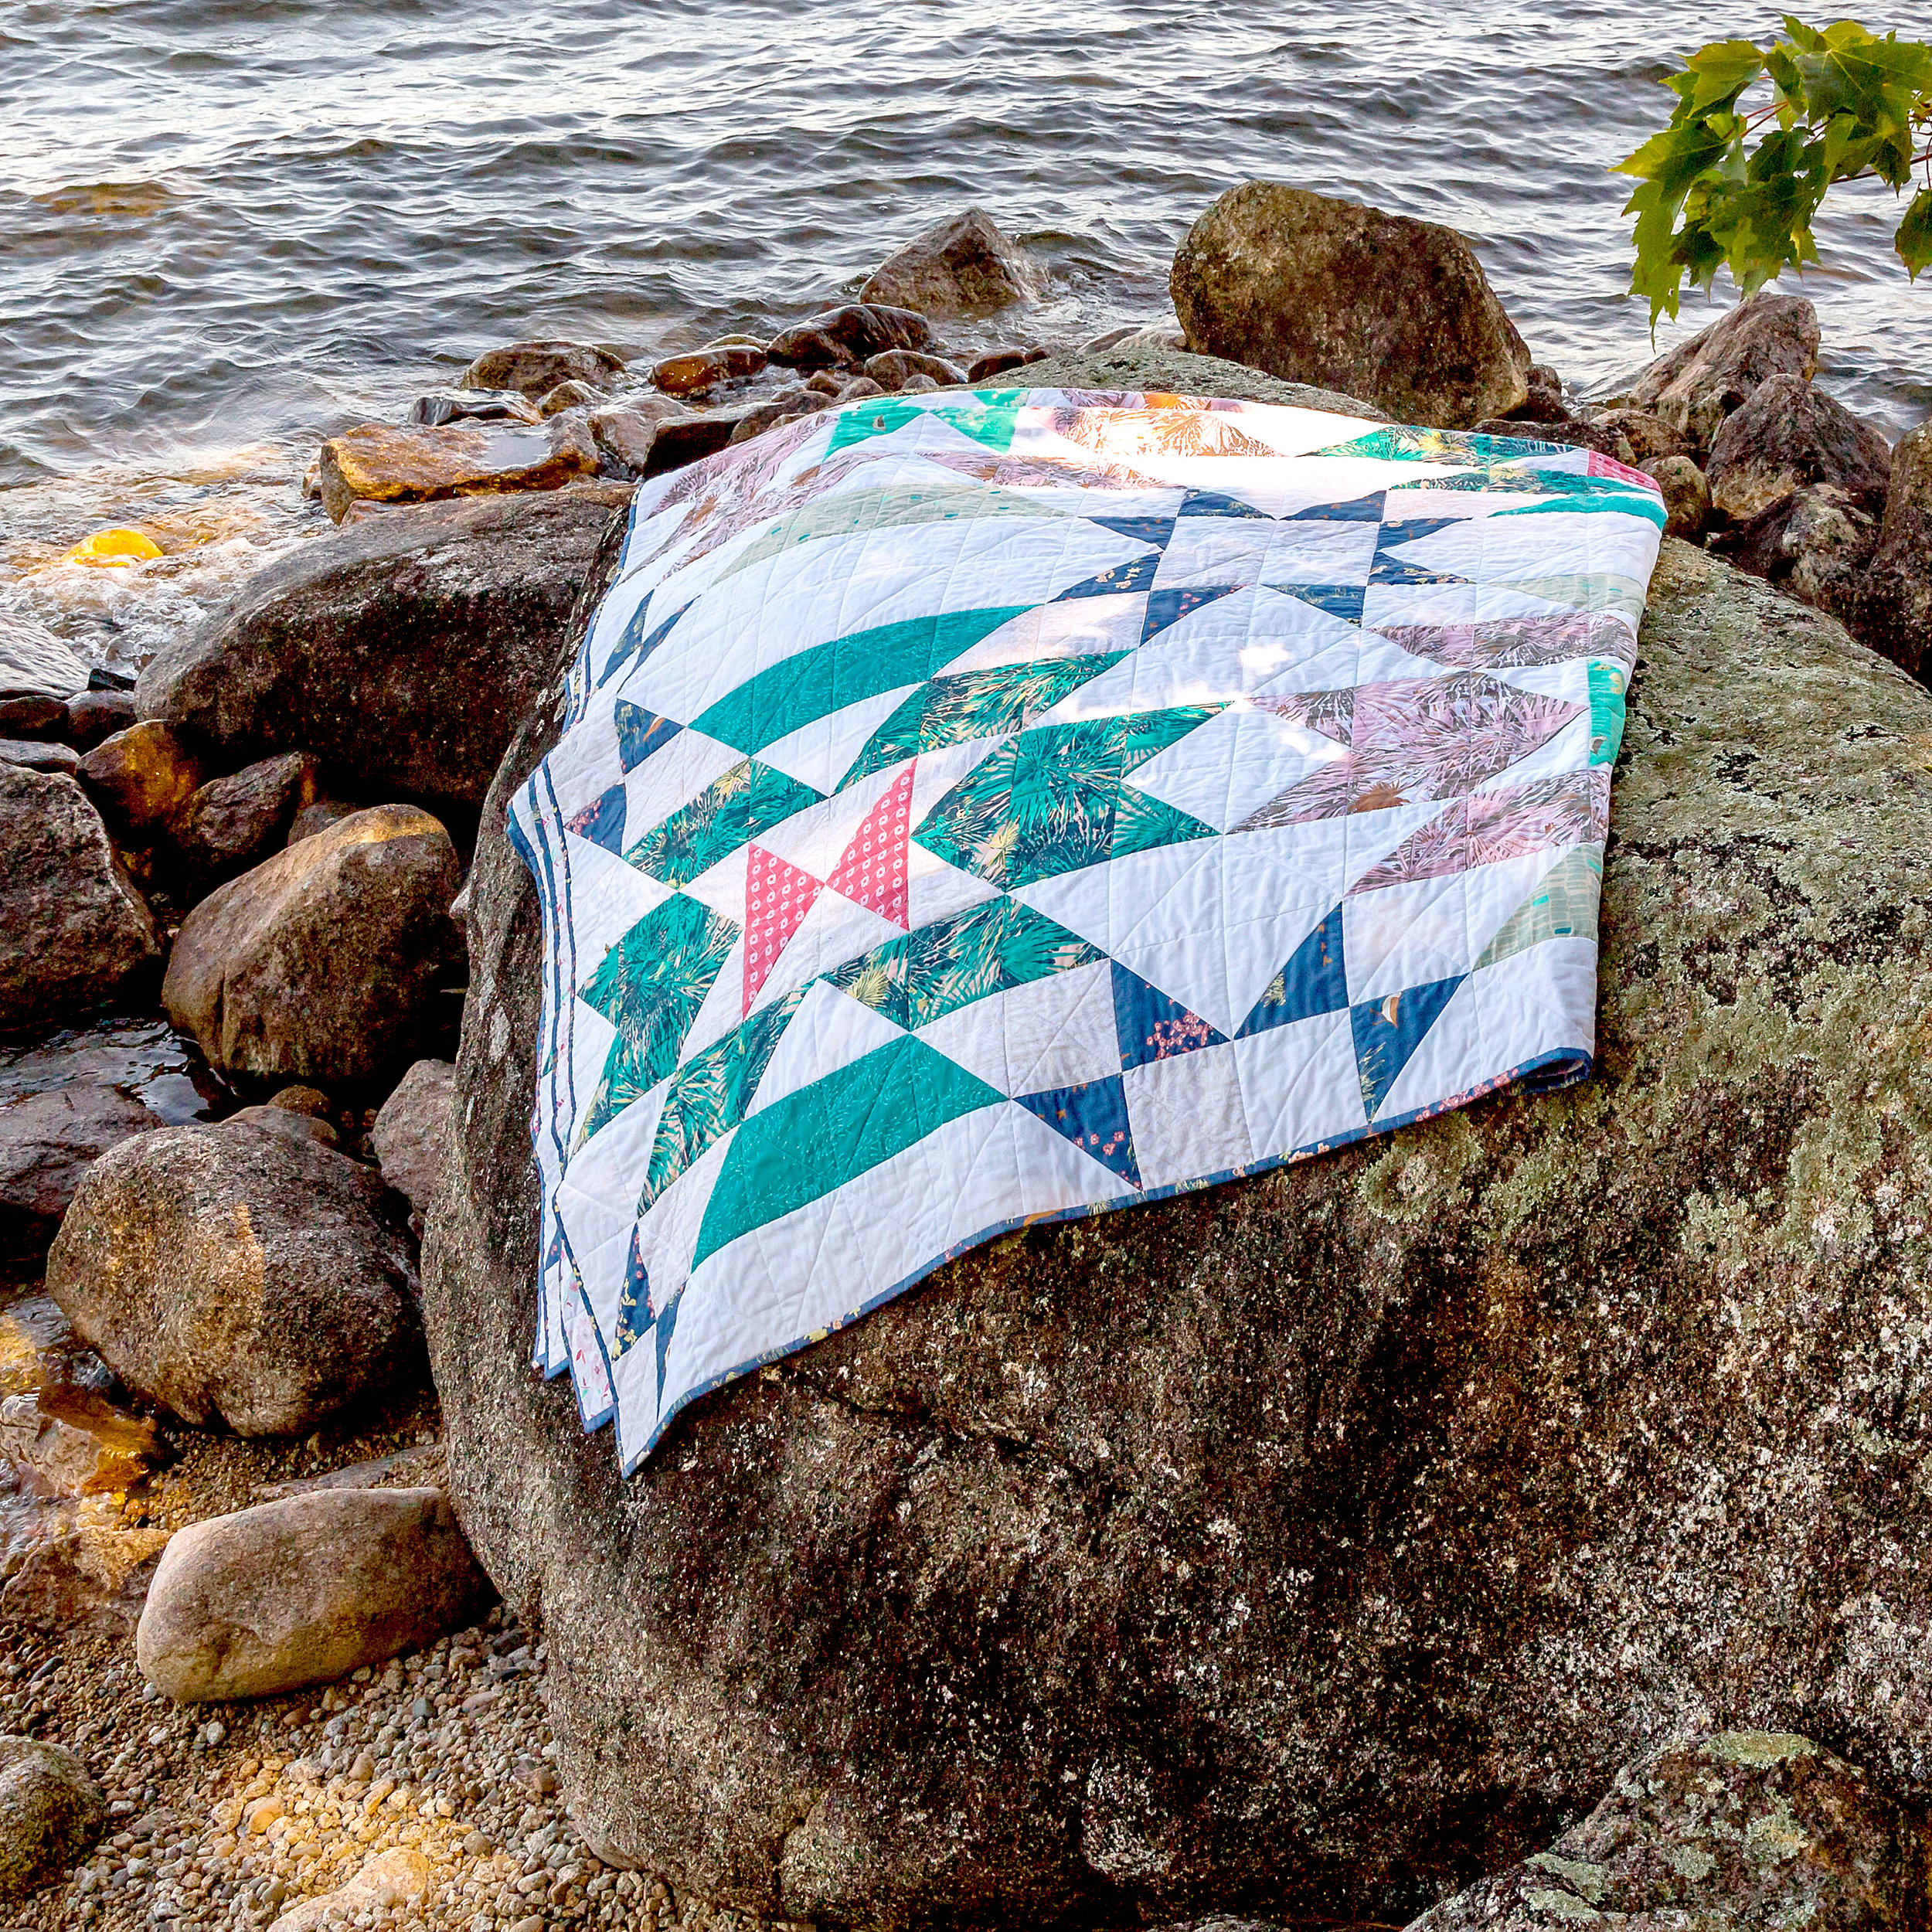 Crystal River quilt photographed by Sandy Storer